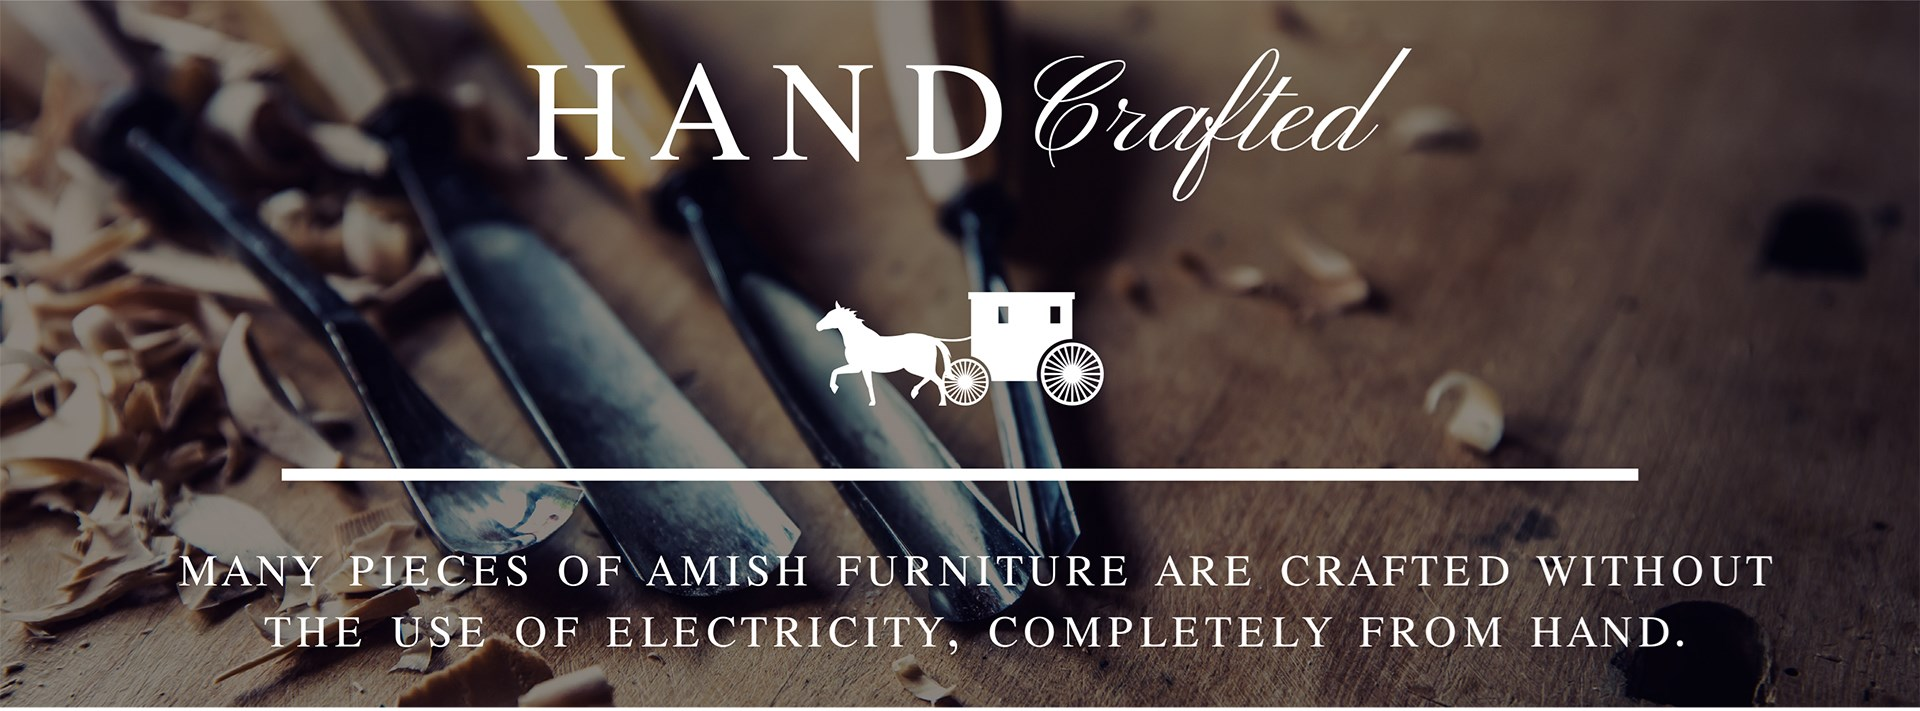 Hand Crafted | Many pieces of amish furniture are crafted without the use of electrcity, completely from hand